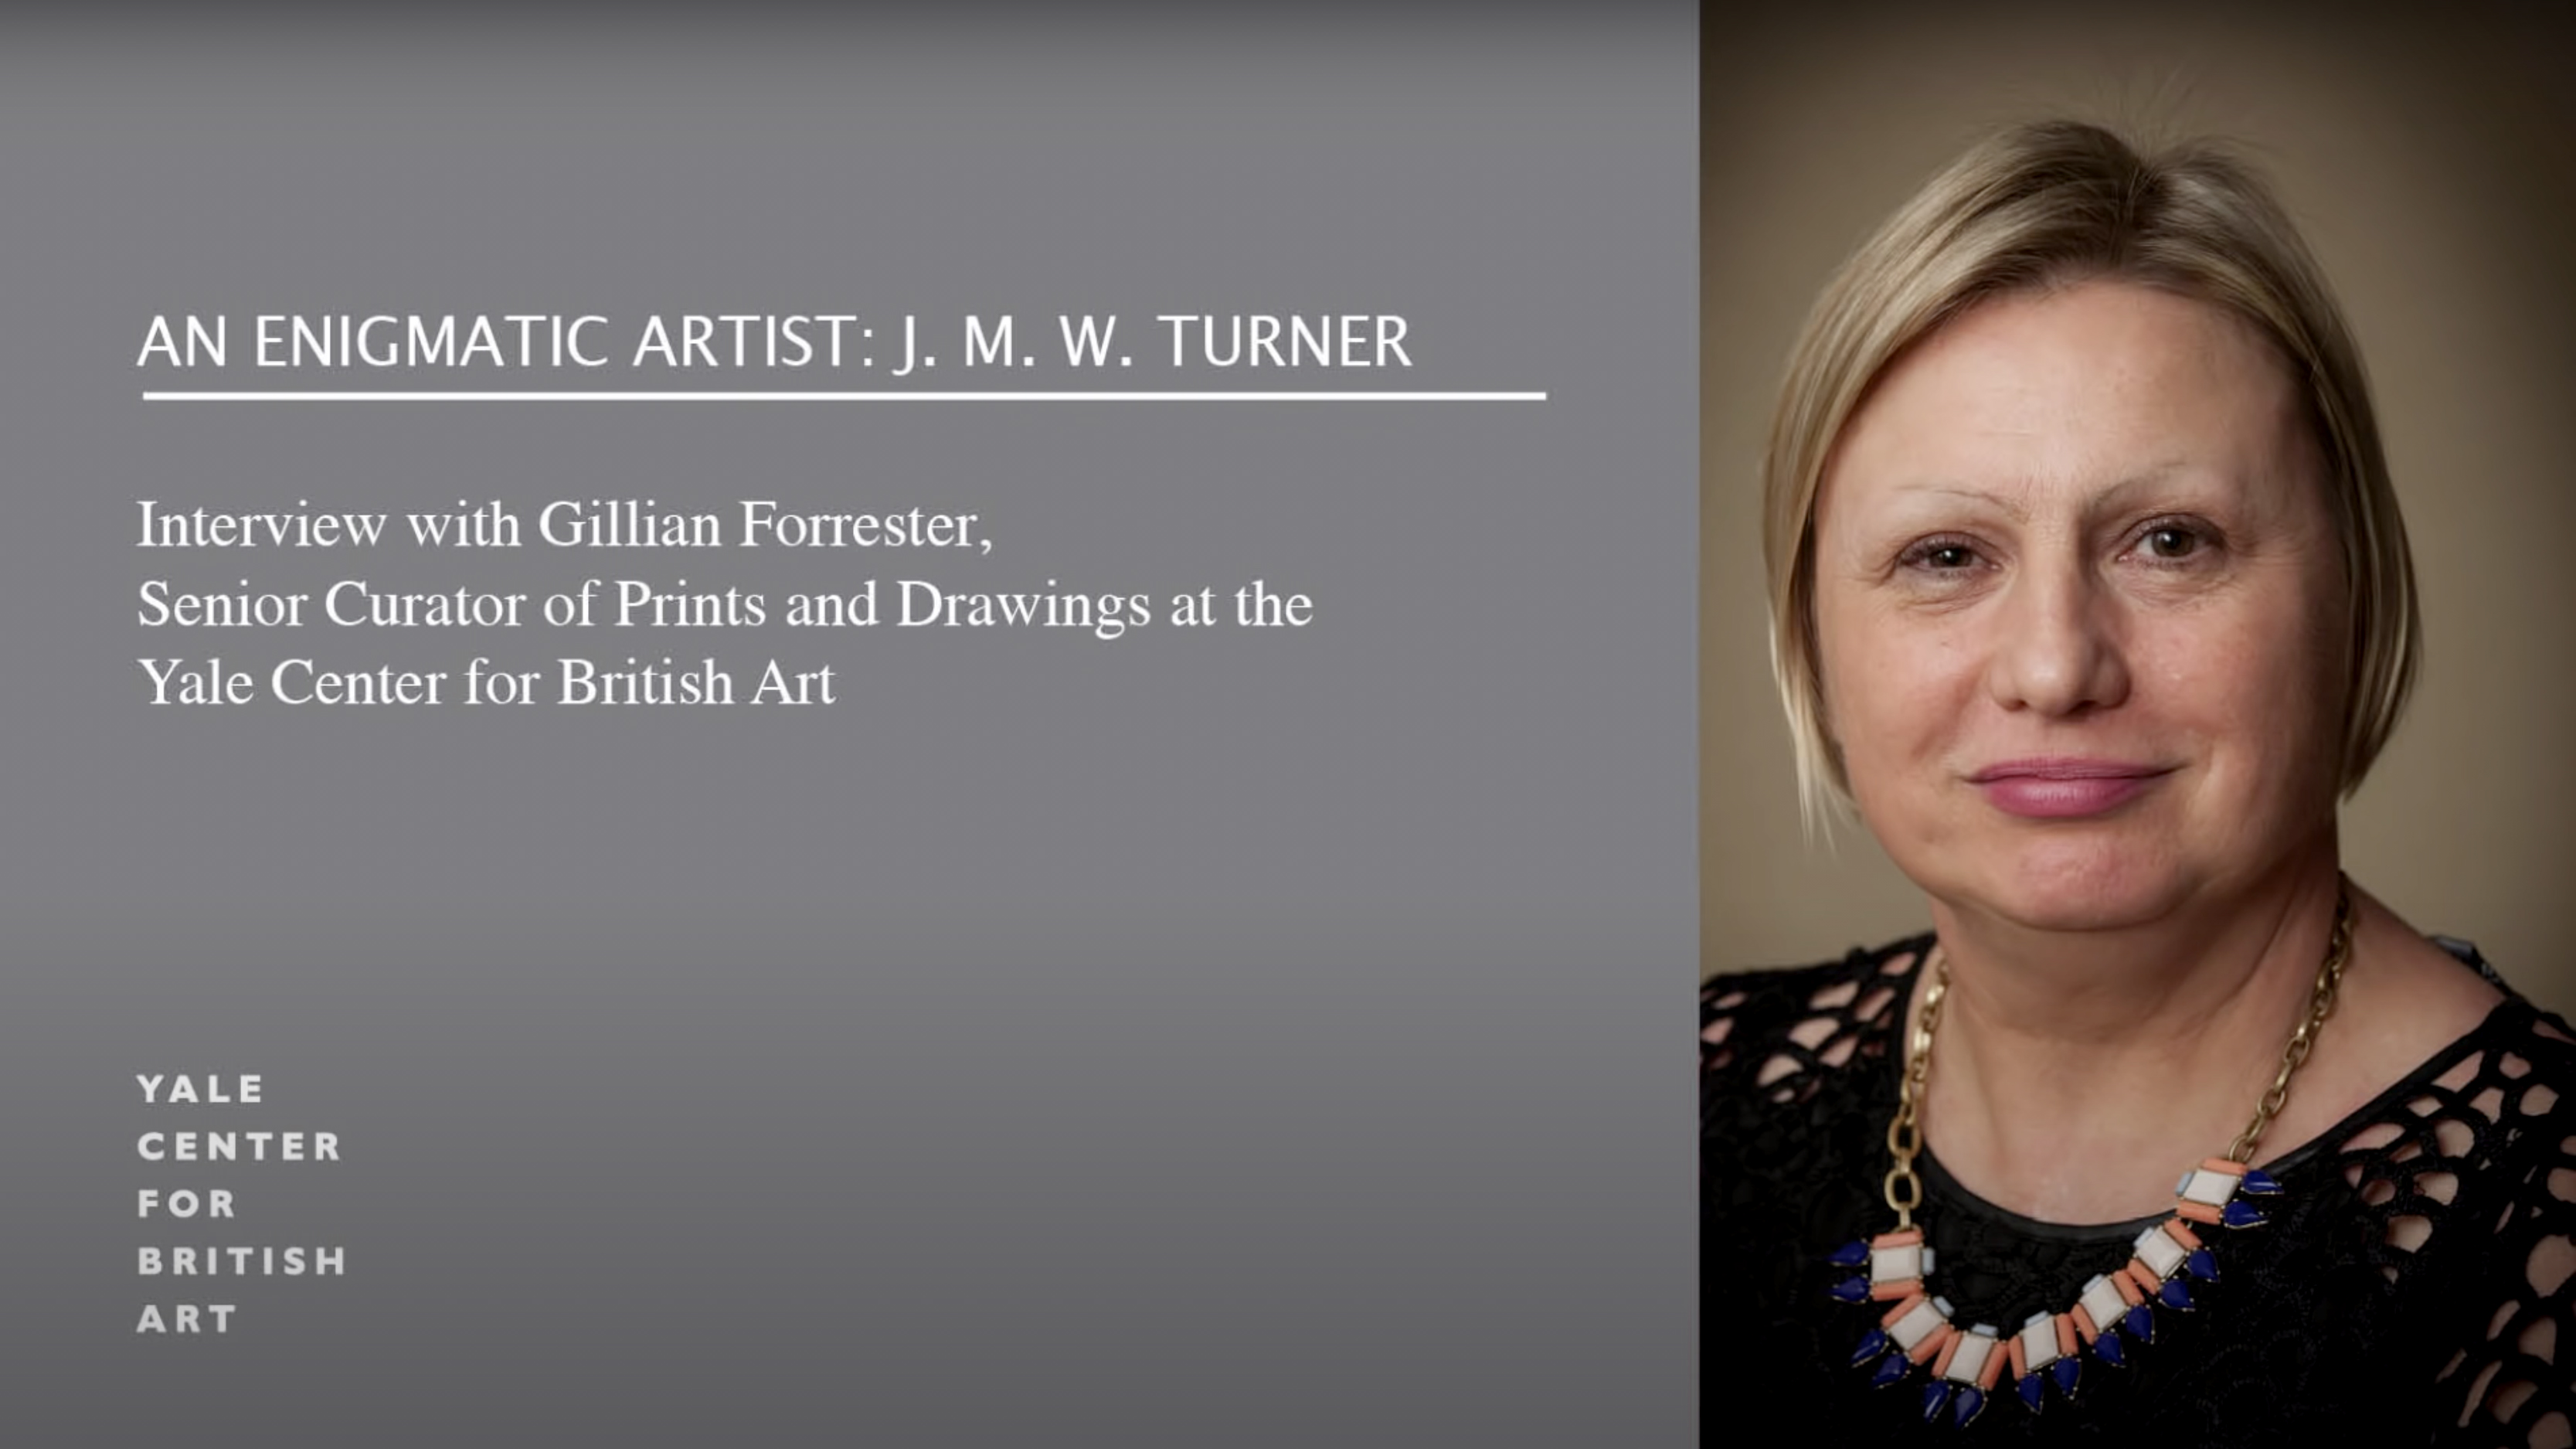 Gillian Forrester on the Fascination with J. M. W. Turner